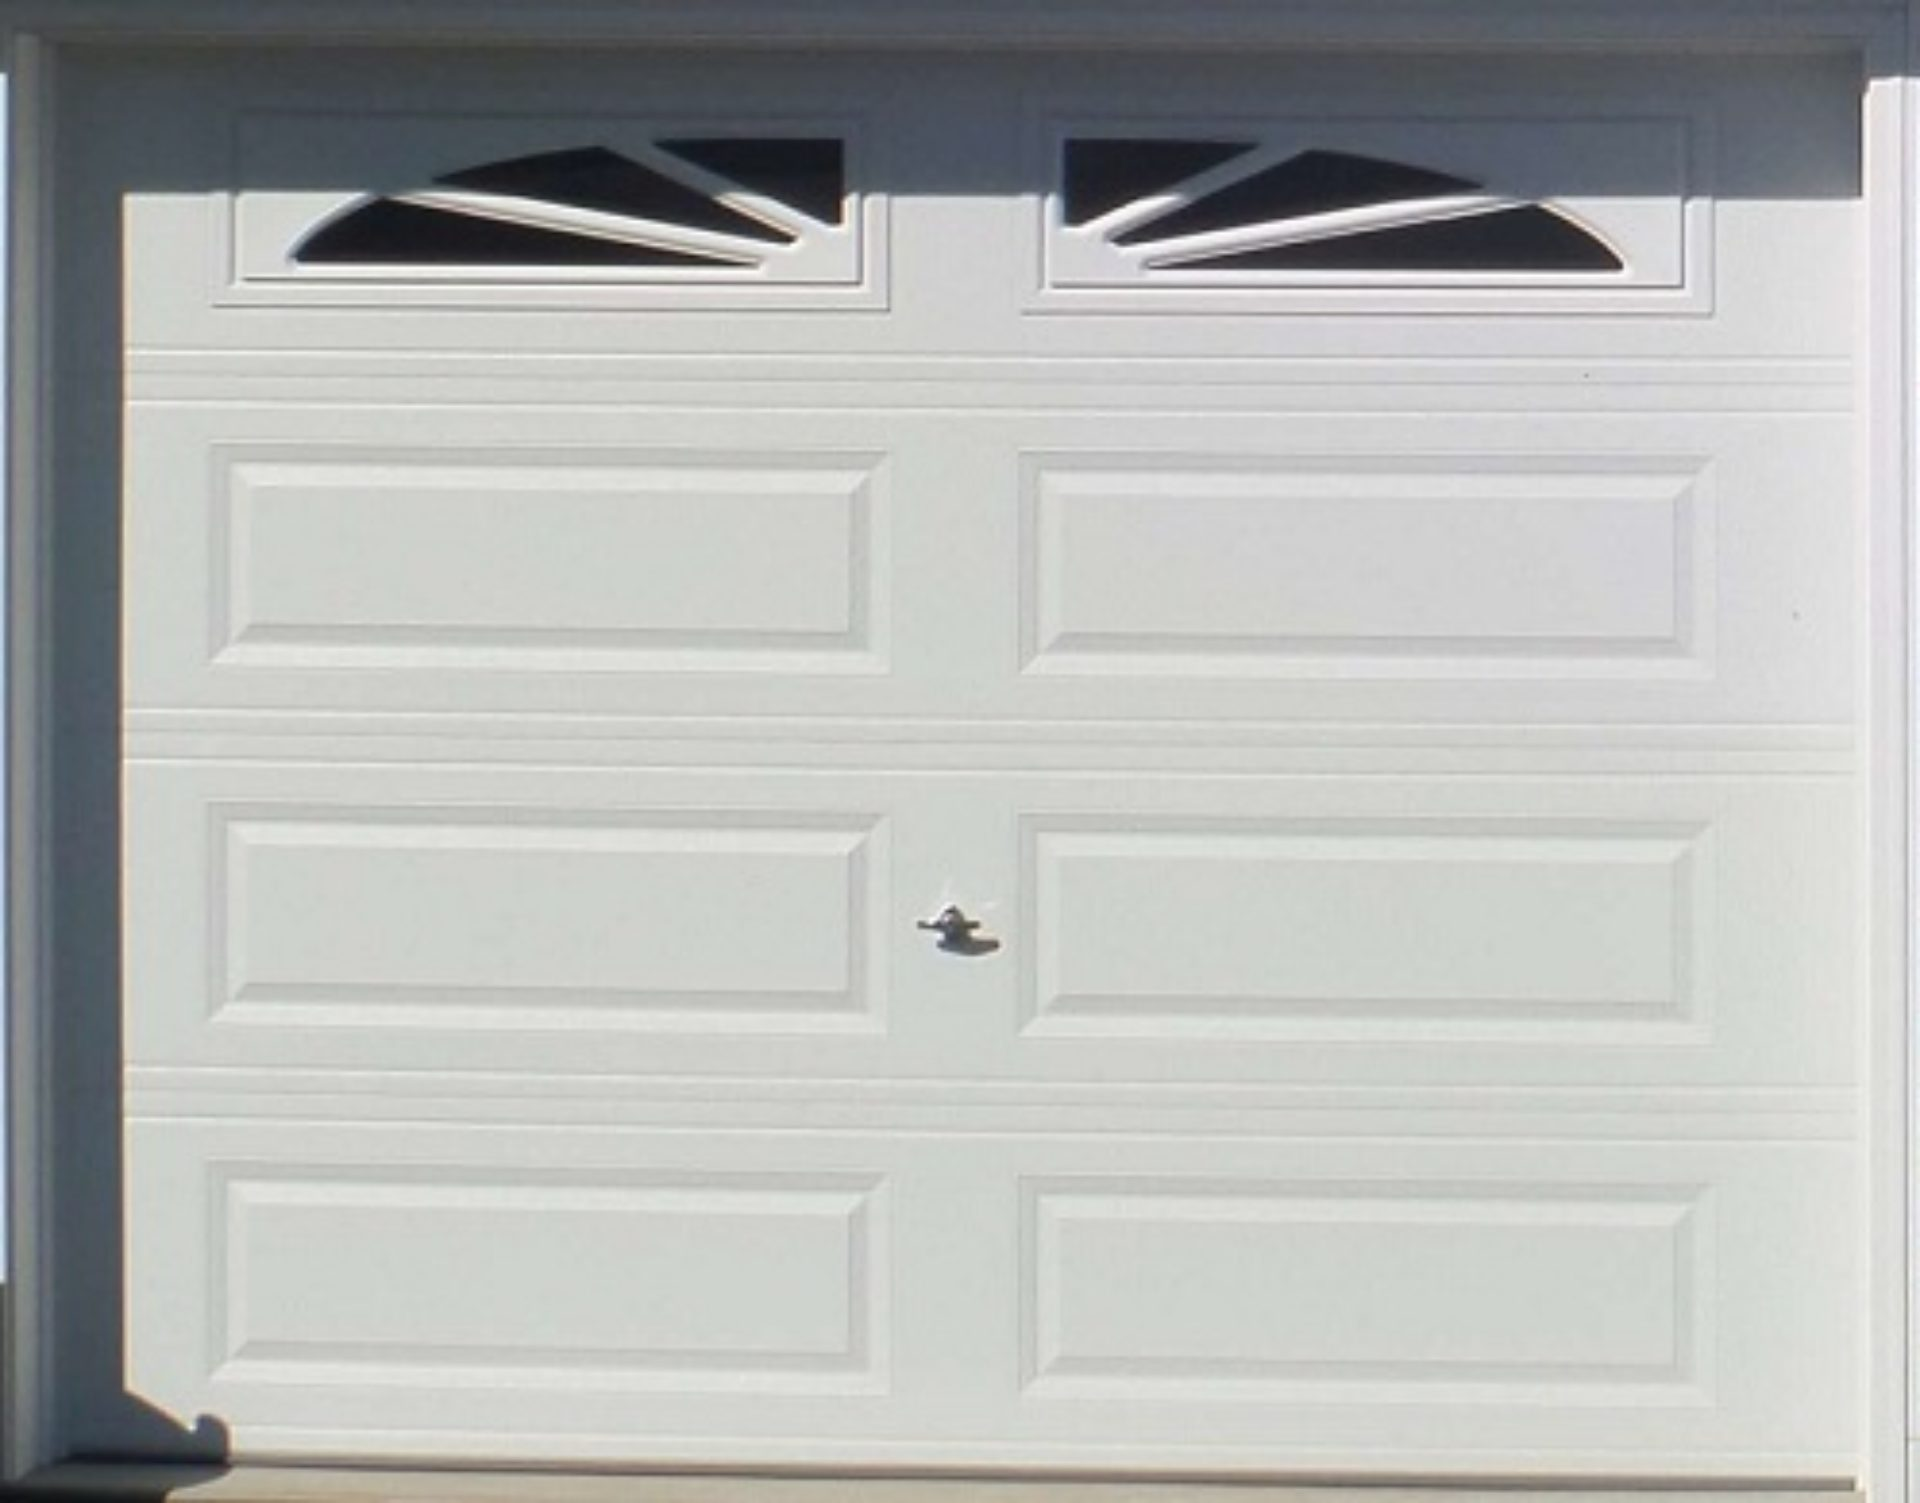 phoenix doors installation door co p a services authentic garage exterior az service arizona